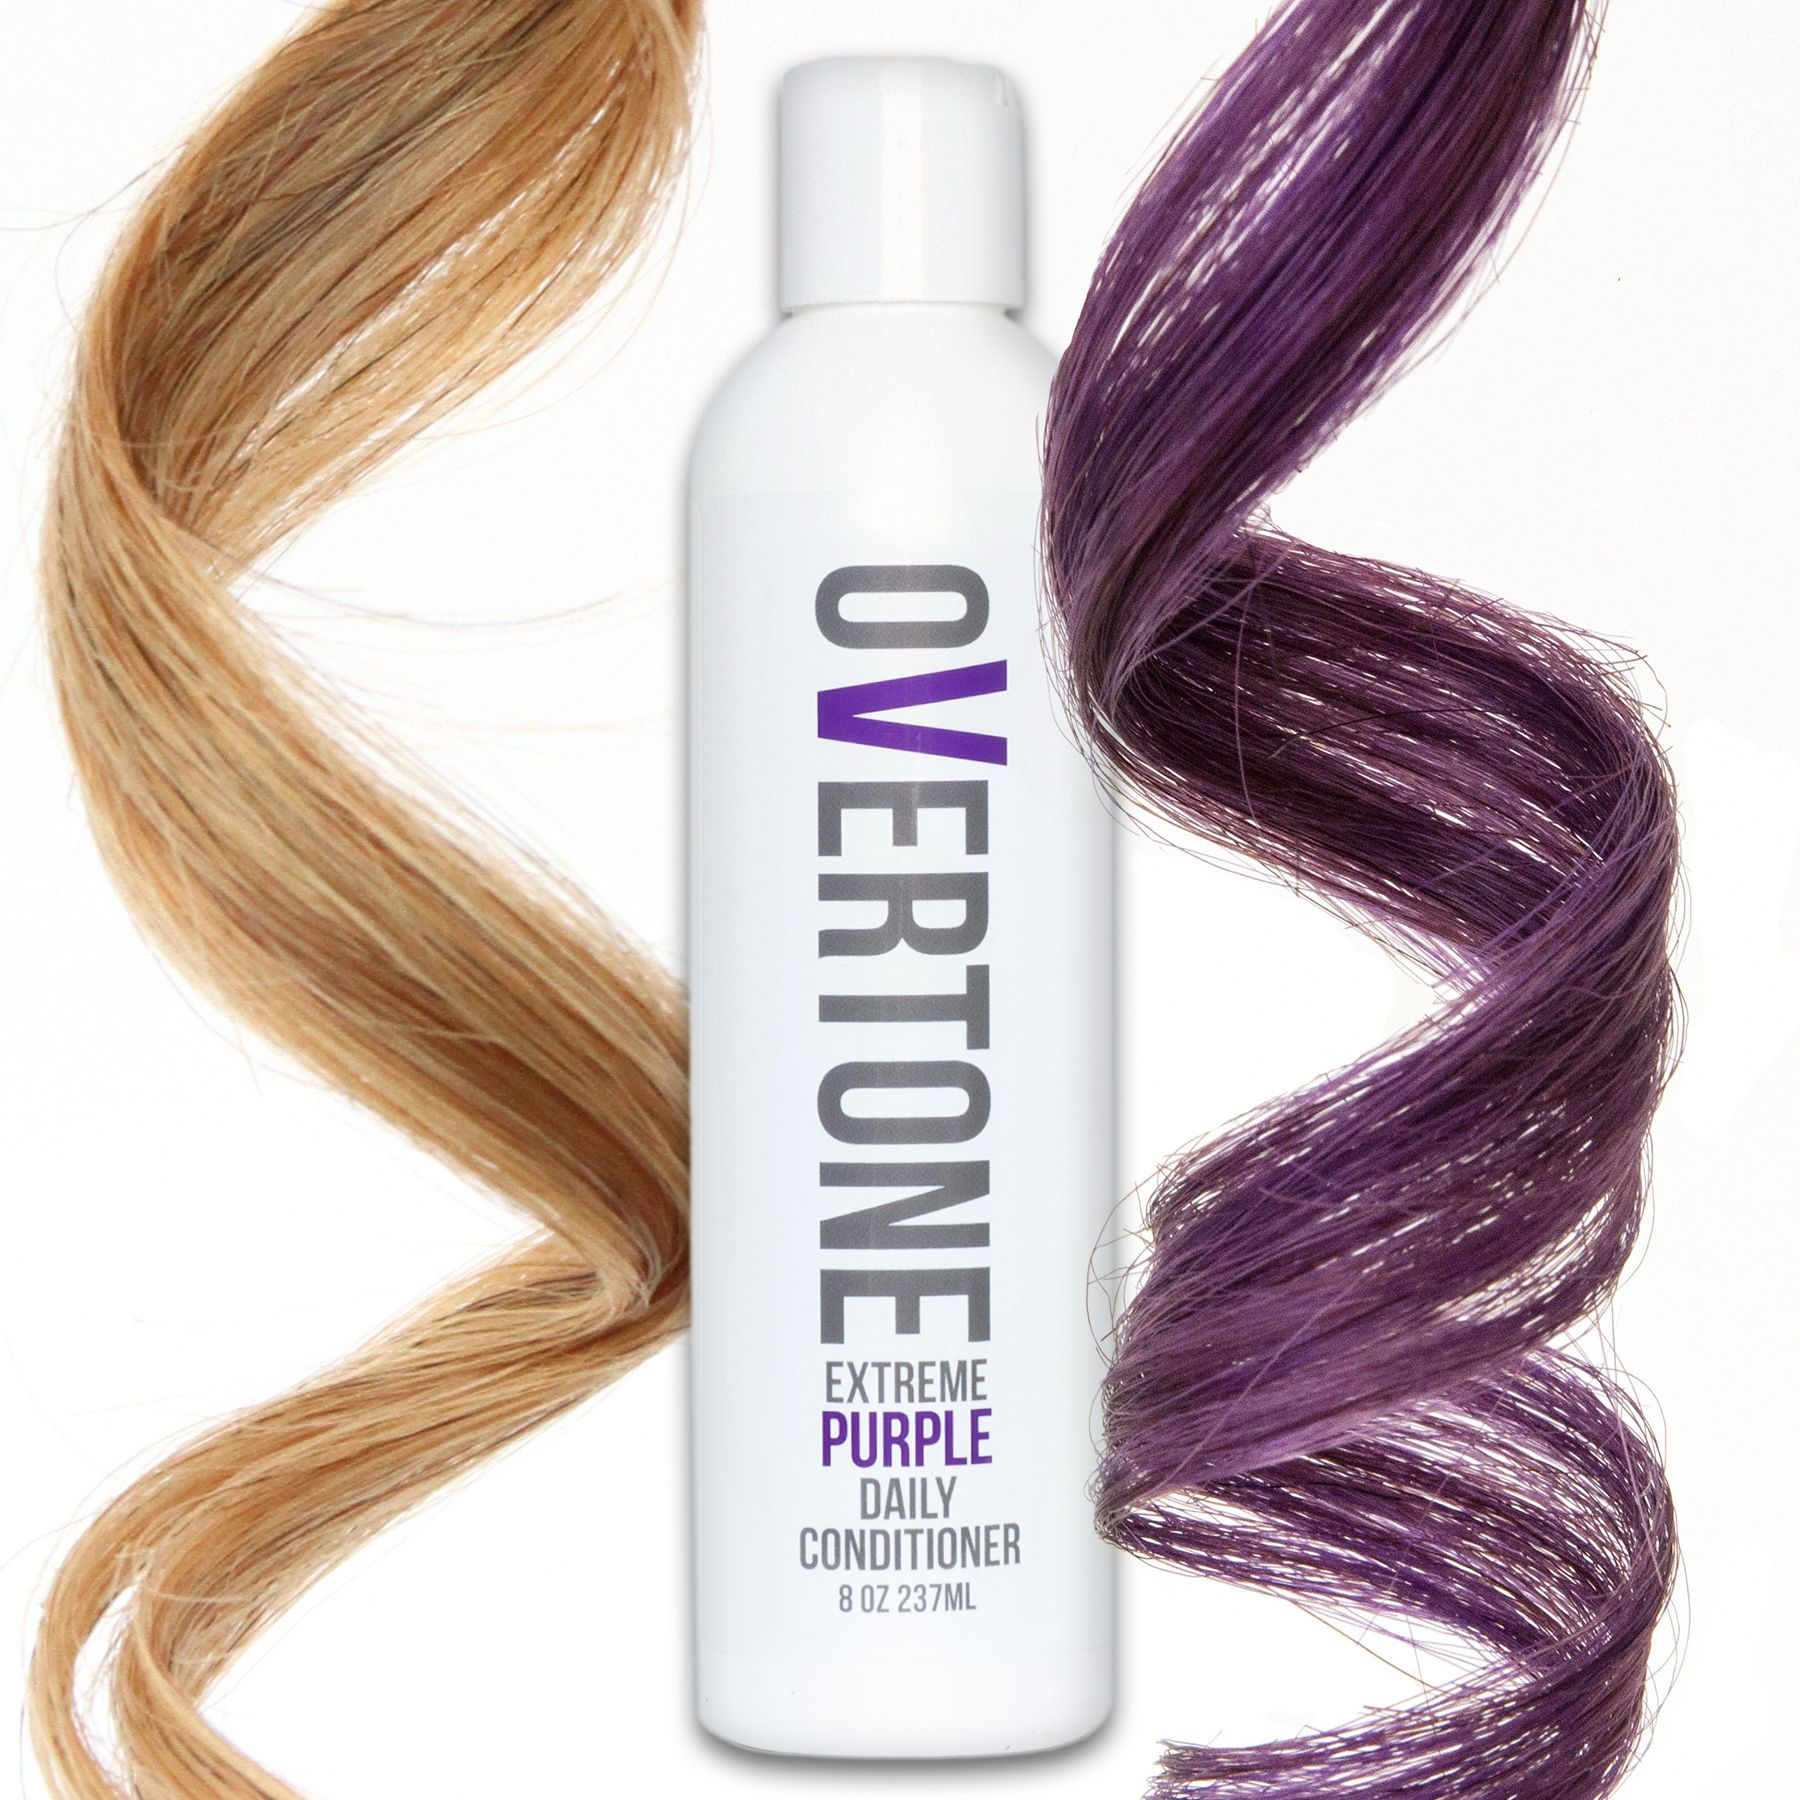 Extreme Purple Daily Conditioner Keep Your Purple Hair Dye Bright Faded Purple Hair Dyed Hair Purple Bright Purple Hair